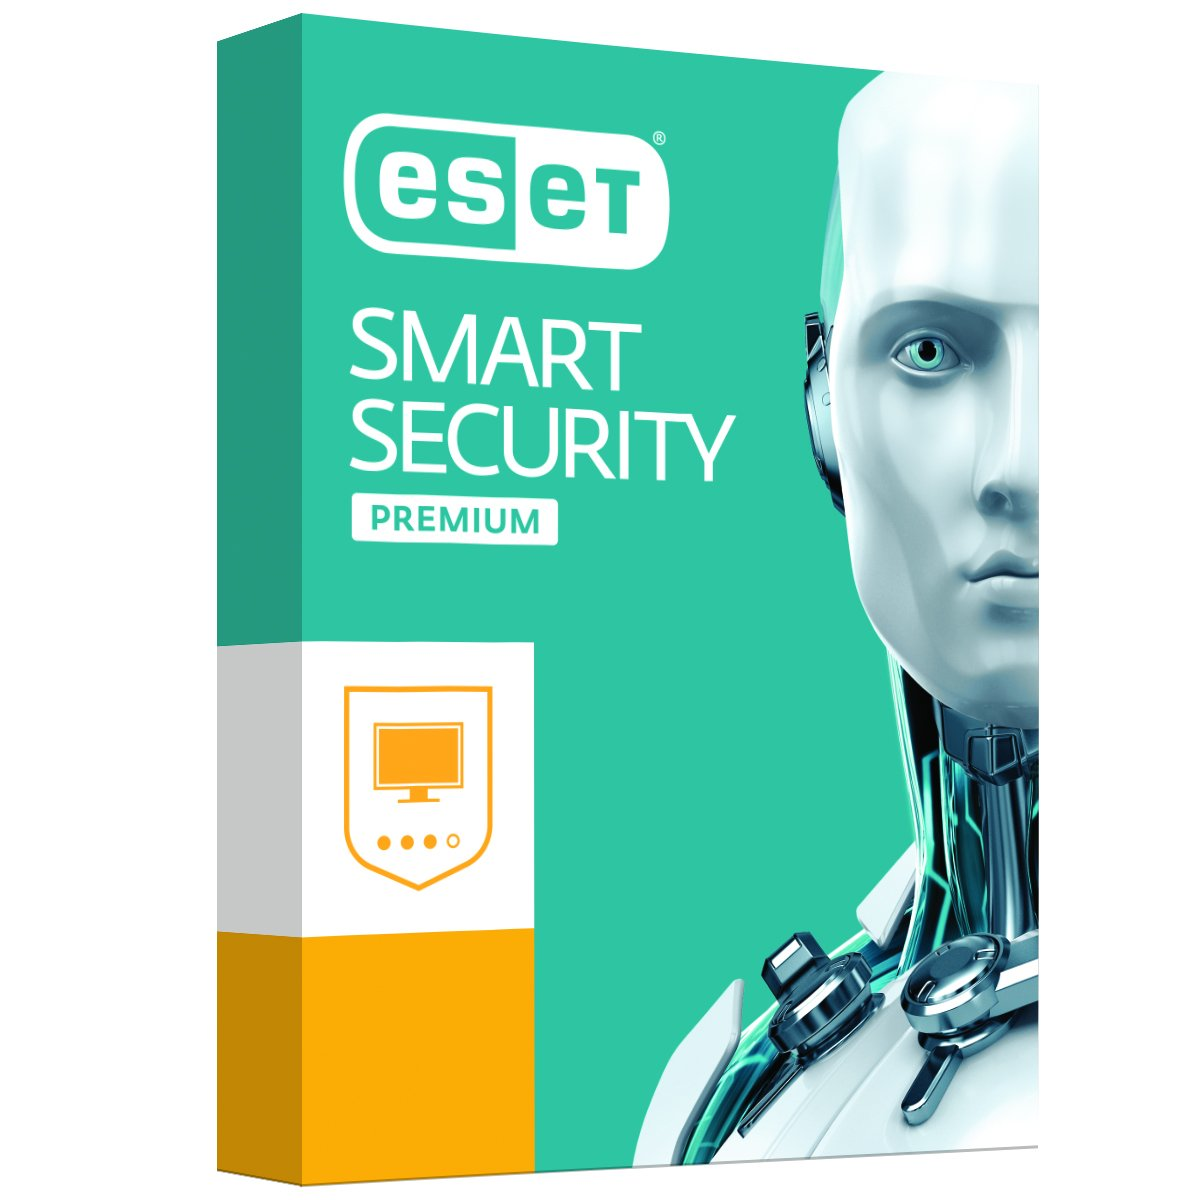 ESET Smart Security Premium Review